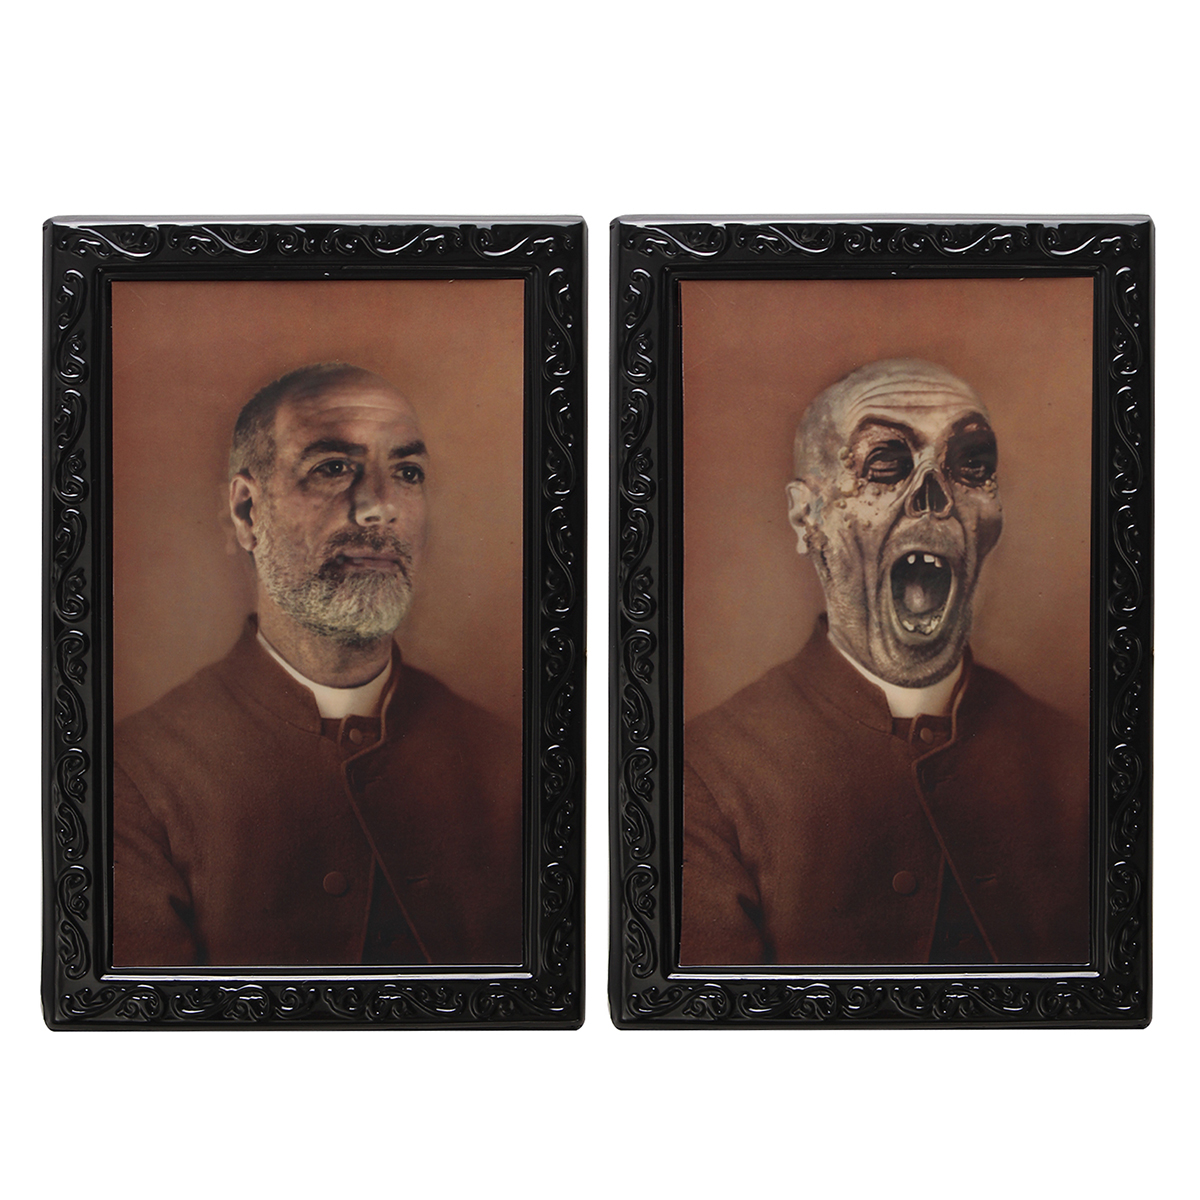 Halloween Lenticular 3D Changing Face Horror Portrait Haunted Spooky Decorations Ornaments